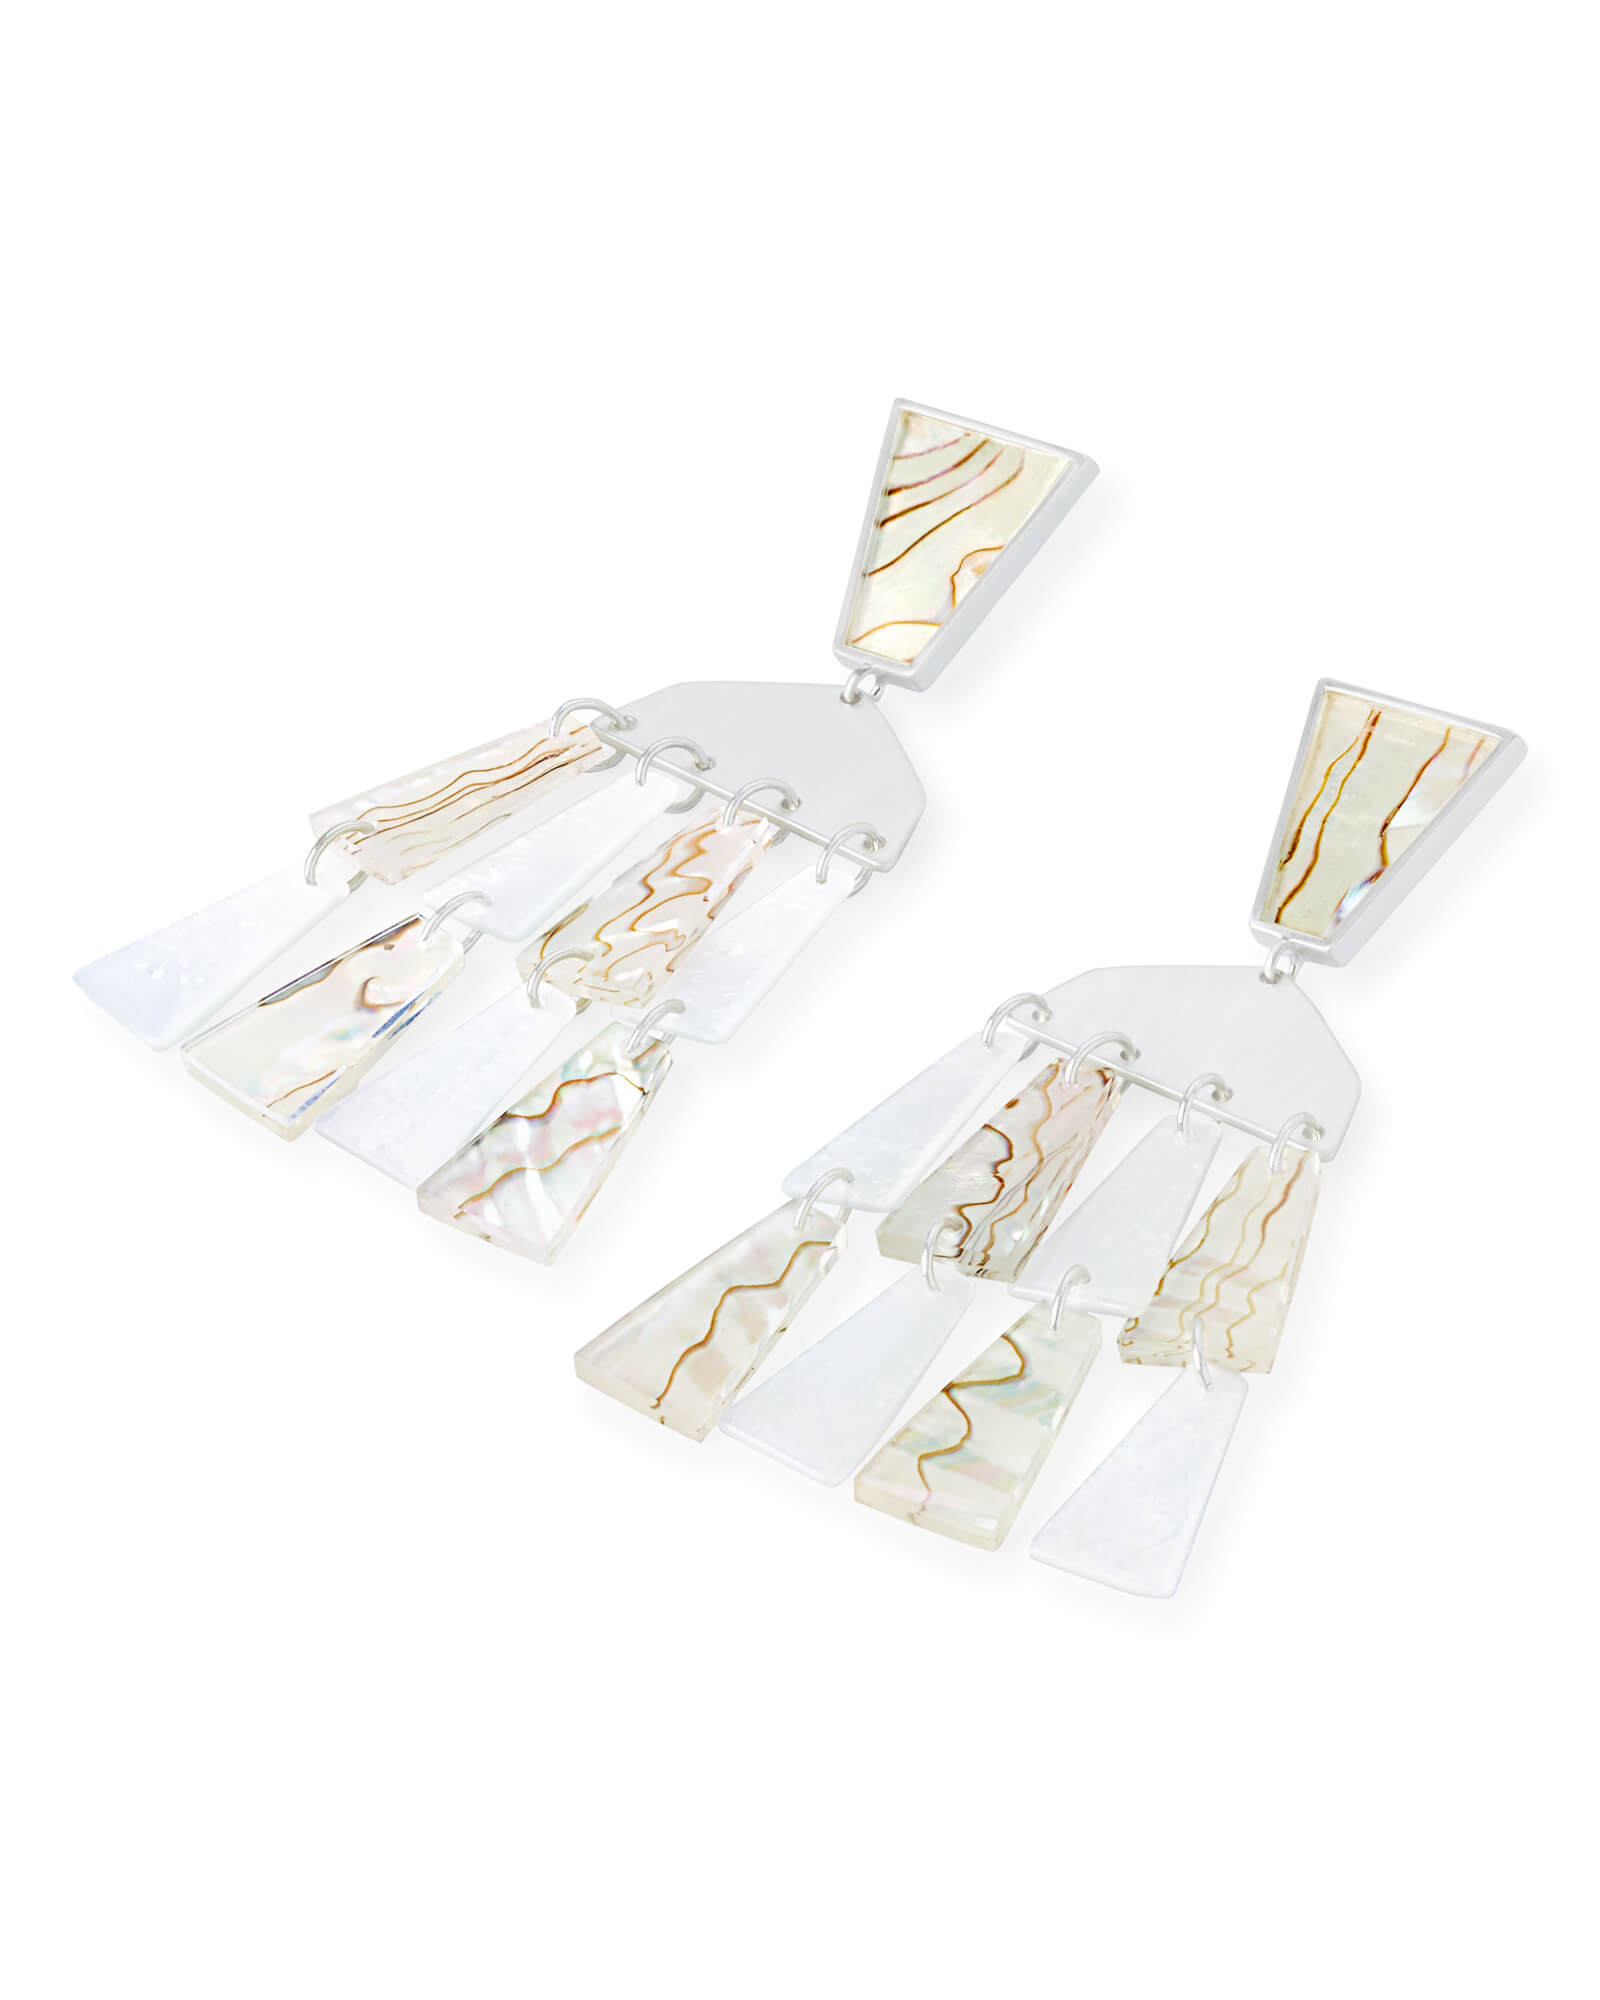 Rechelle Bright Silver Statement Earrings in White Mix